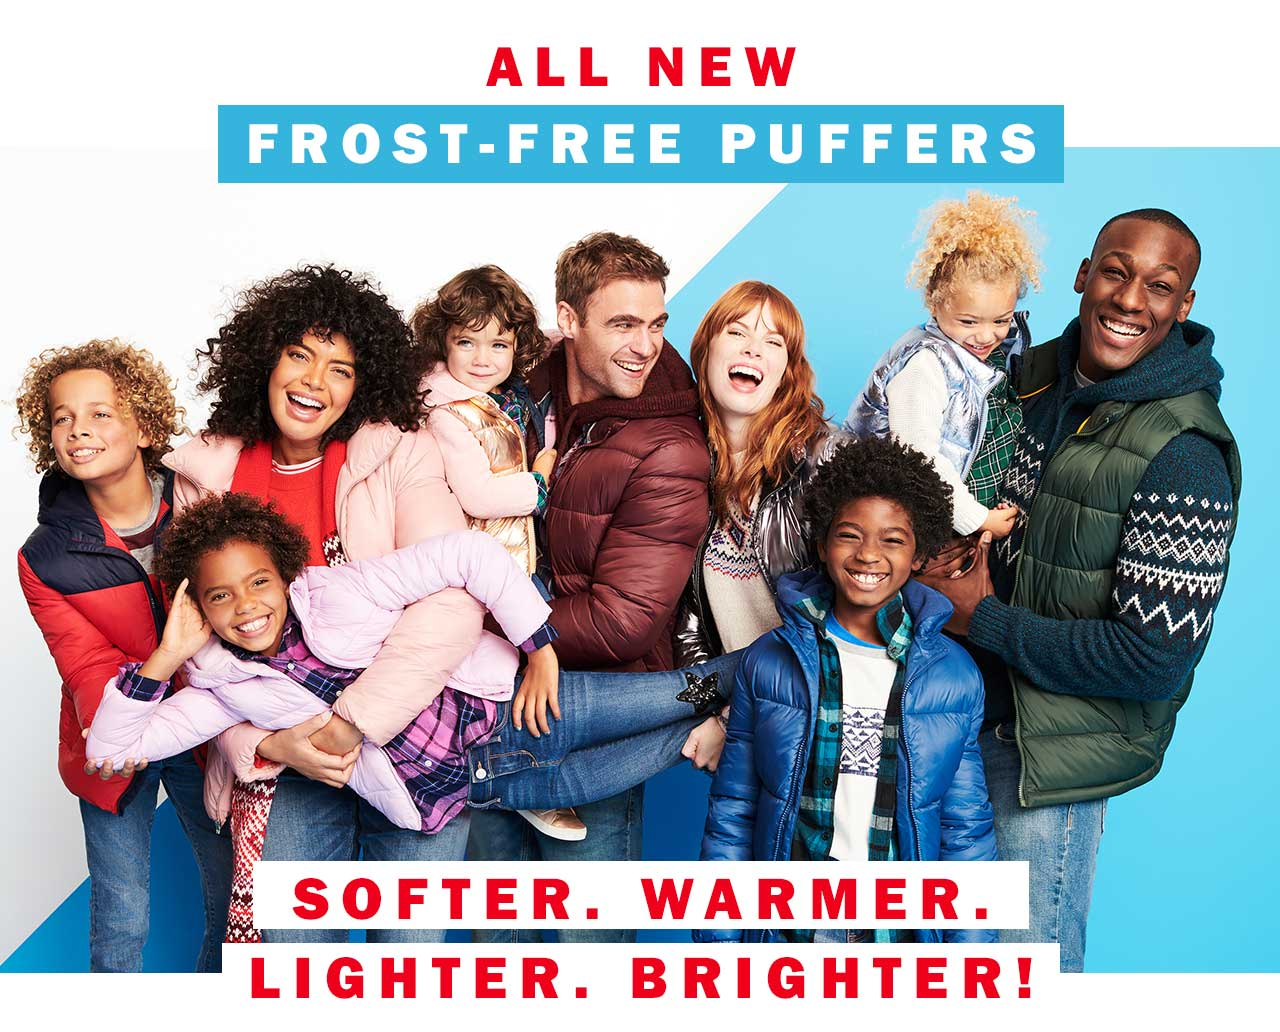 All new frost-free puffers